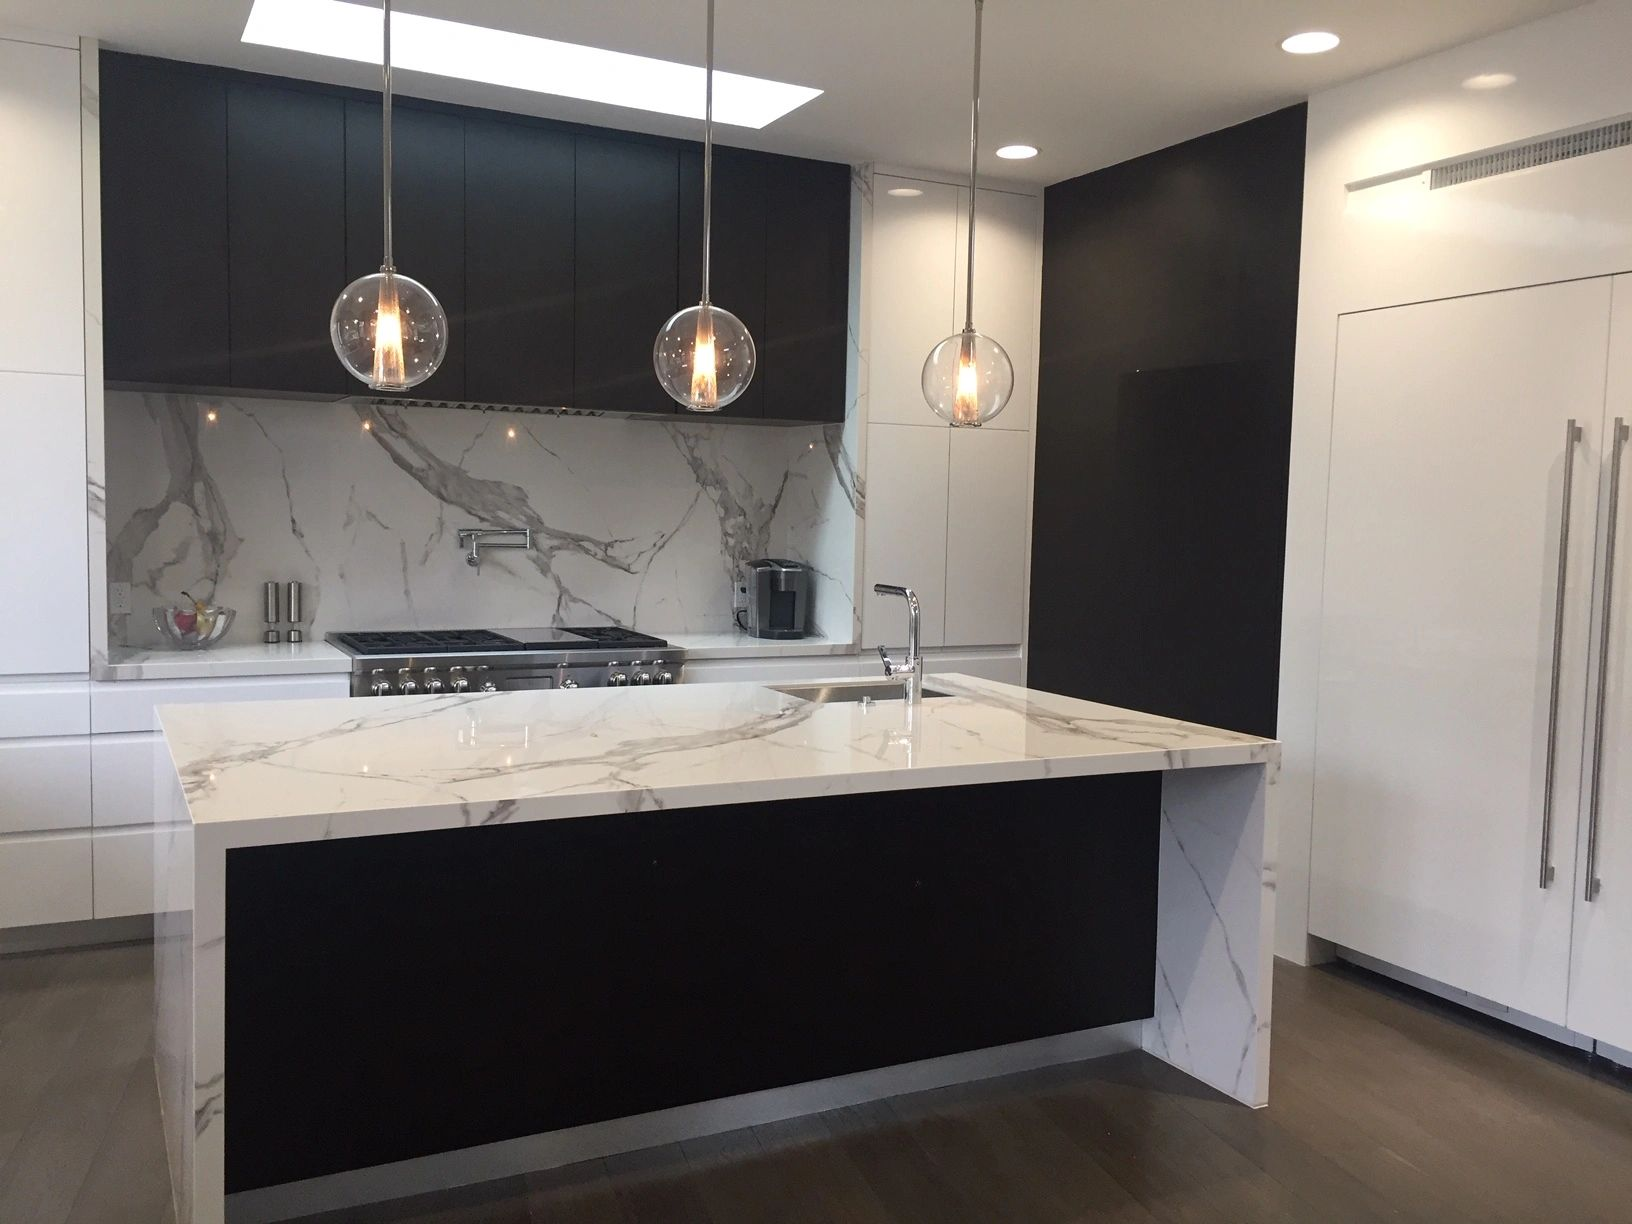 Italian Porcelain Slabs For Countertops And Walls